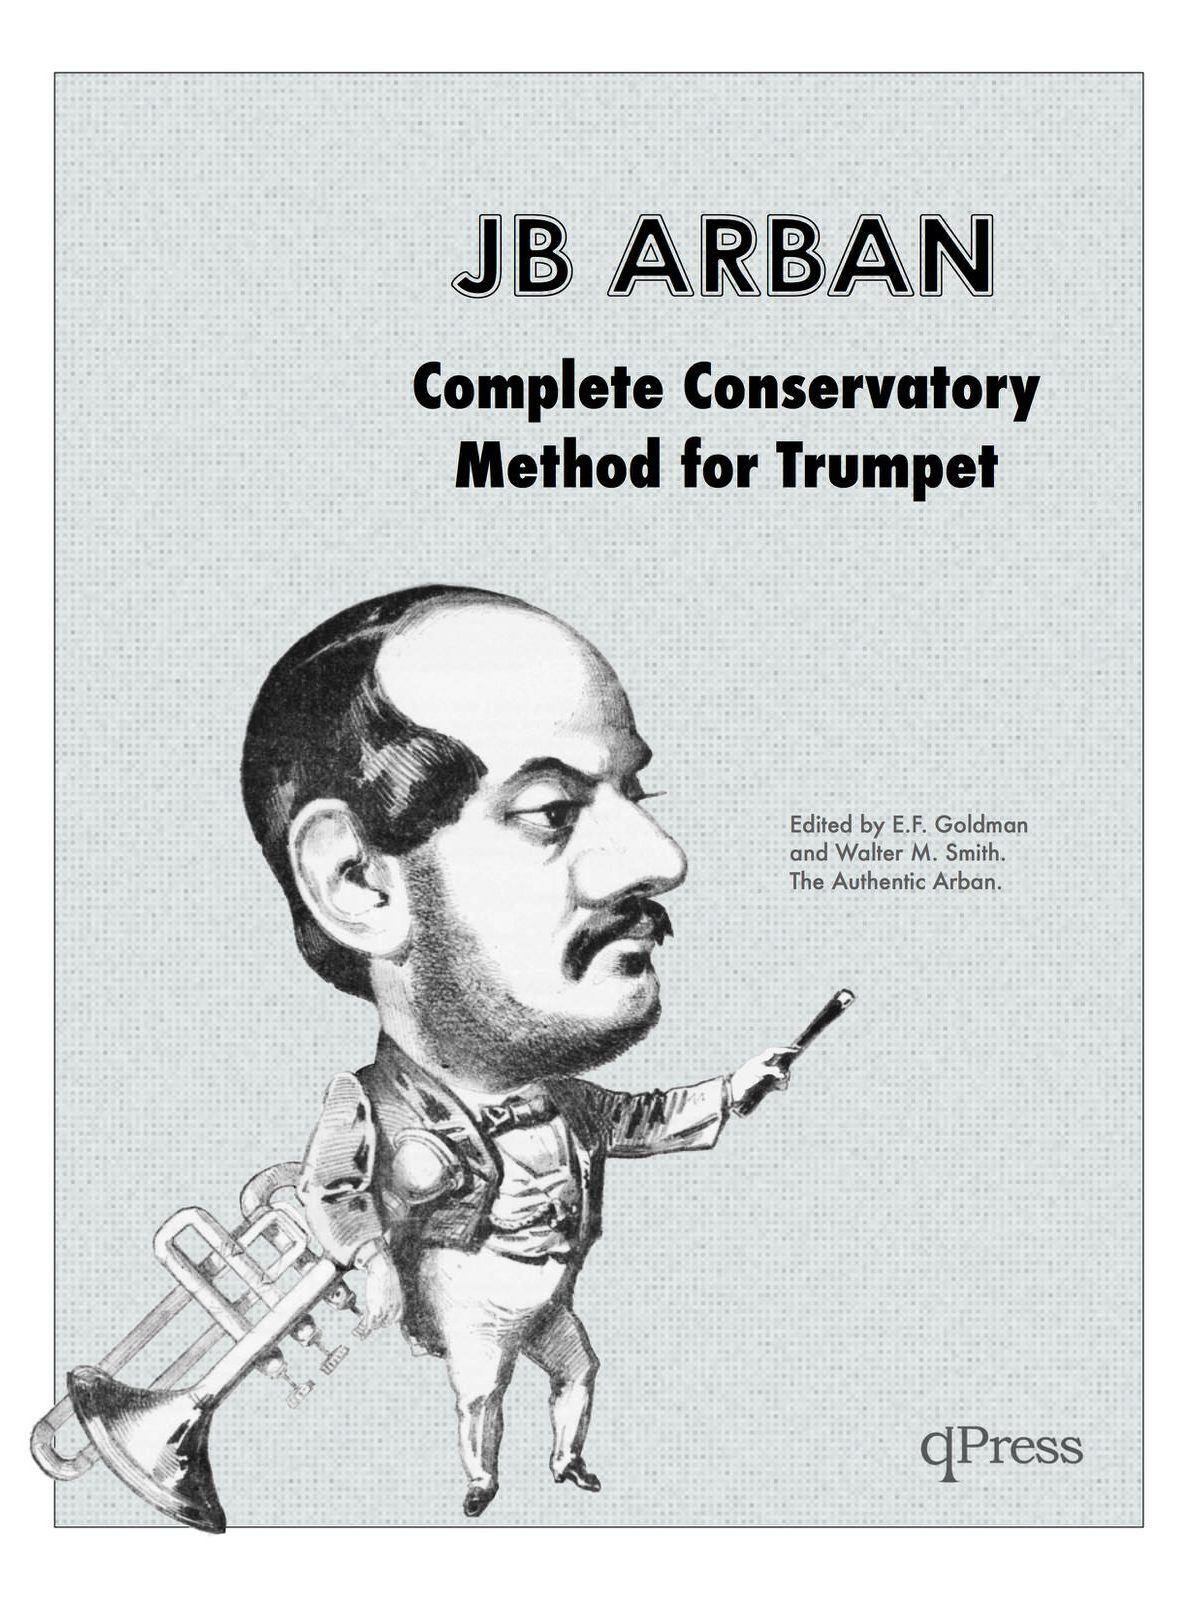 Complete conservatory method by arban jean baptiste qpress arban complete conservatory method fandeluxe Image collections